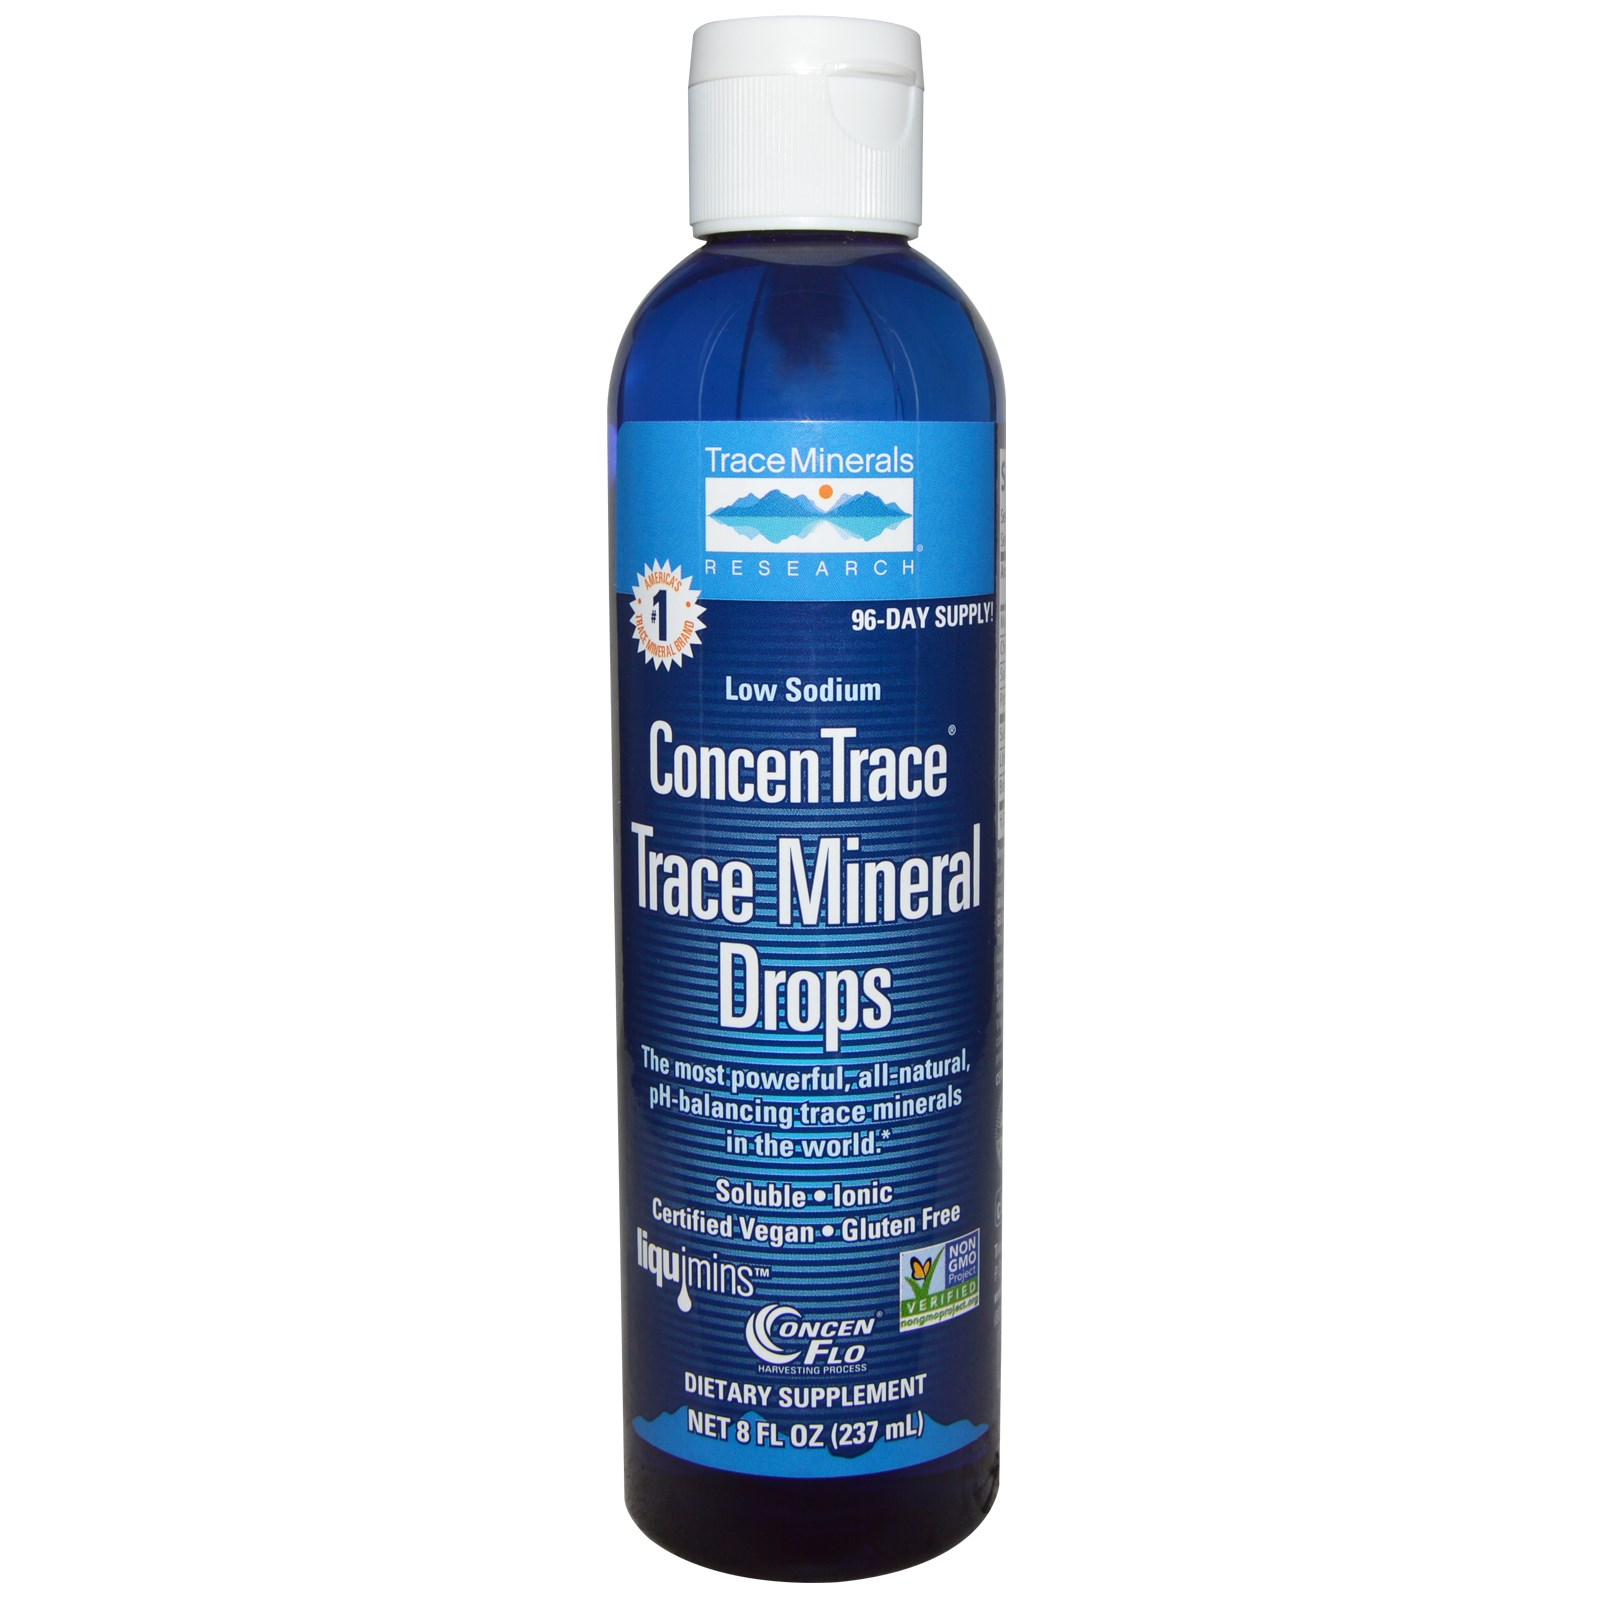 Image of ConcenTrace, Trace Mineral Drops (237 ml) - Trace Minerals Research 0878941000058